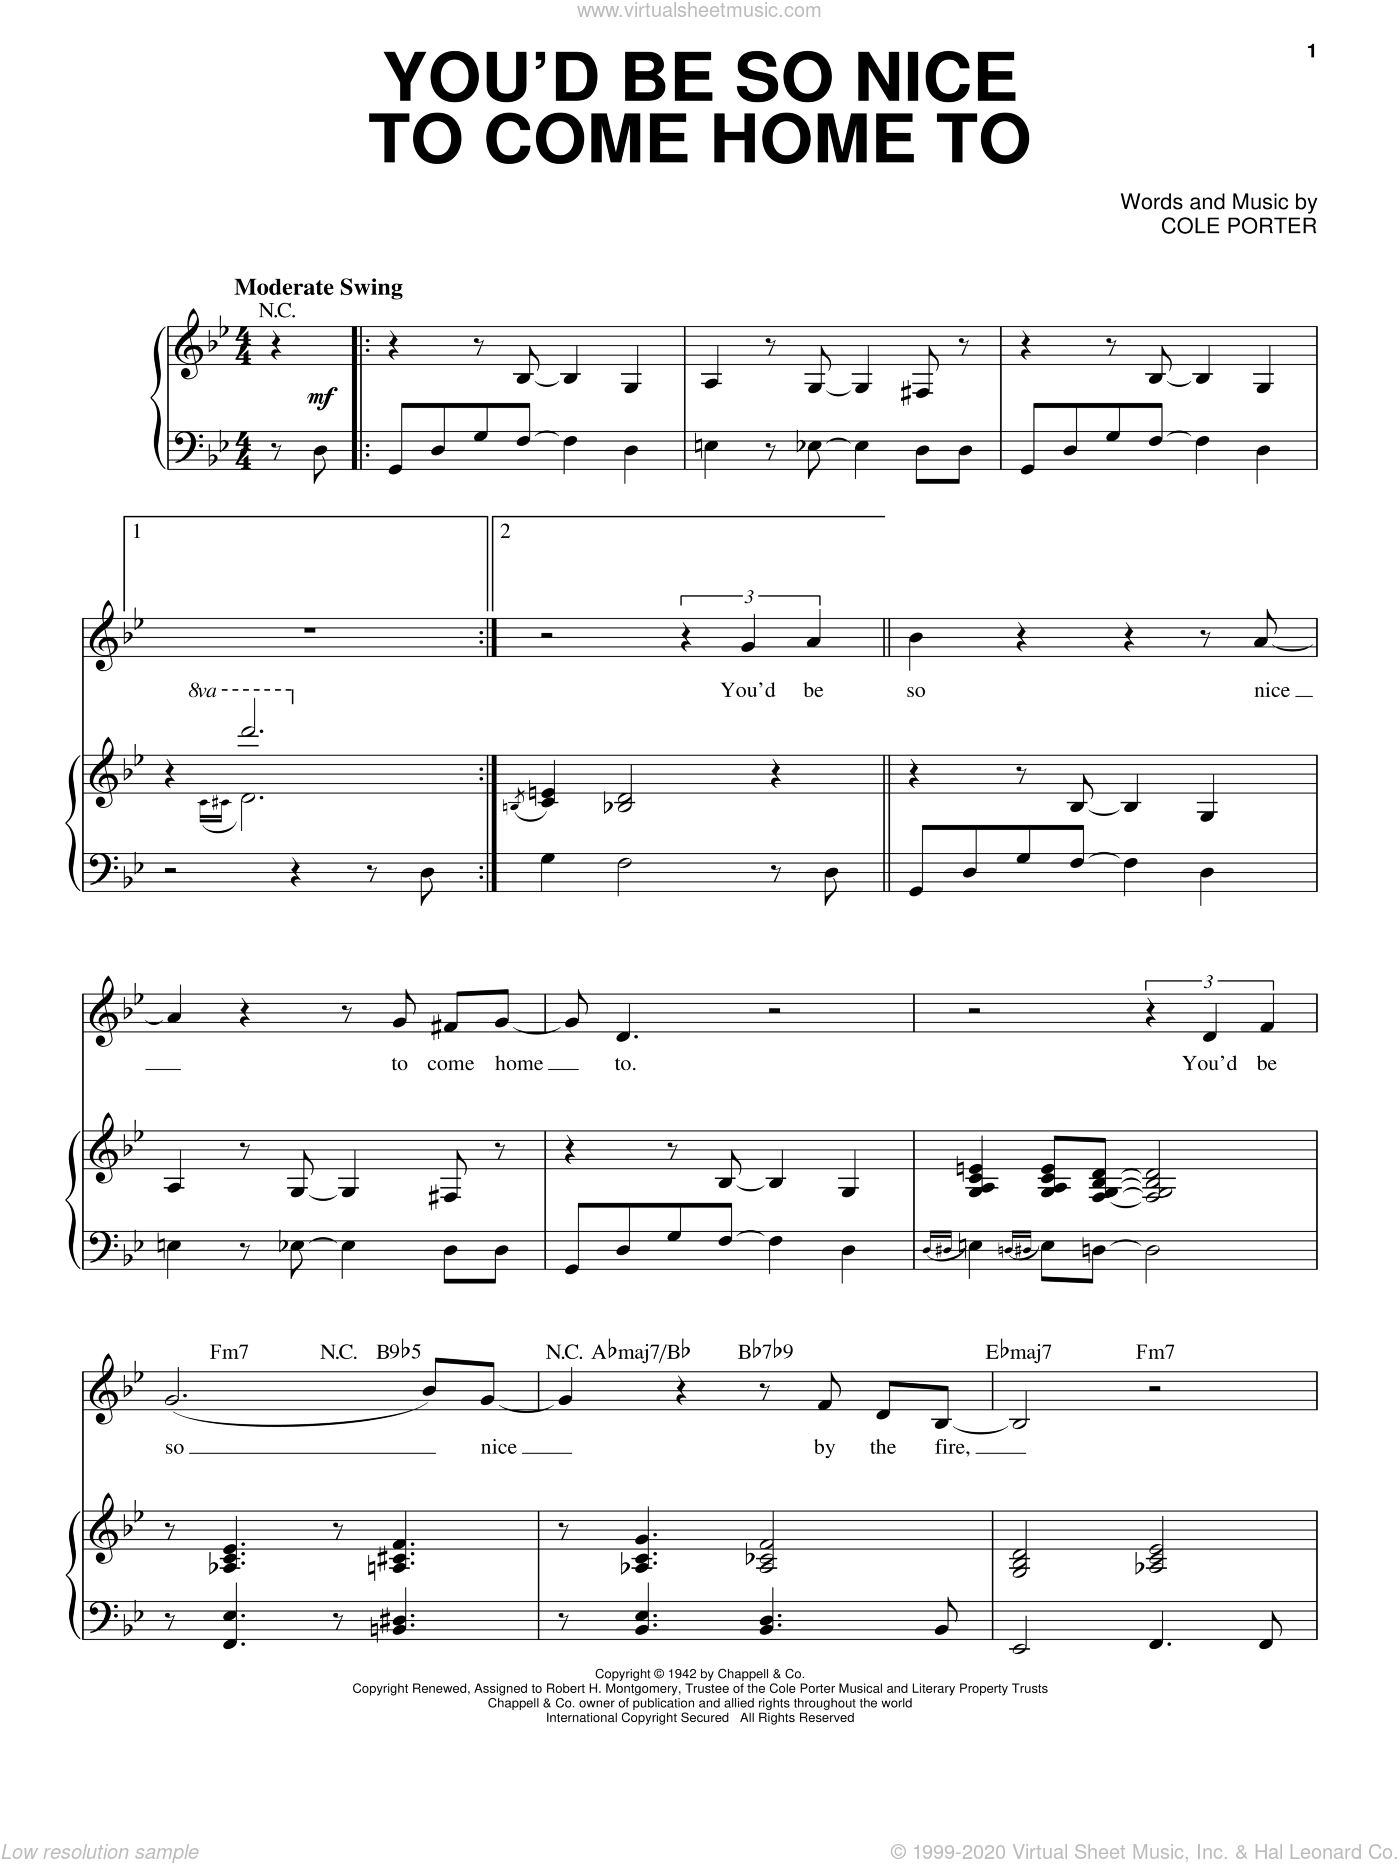 You'd Be So Nice To Come Home To sheet music for voice and piano by Steve Tyrell and Cole Porter, intermediate skill level